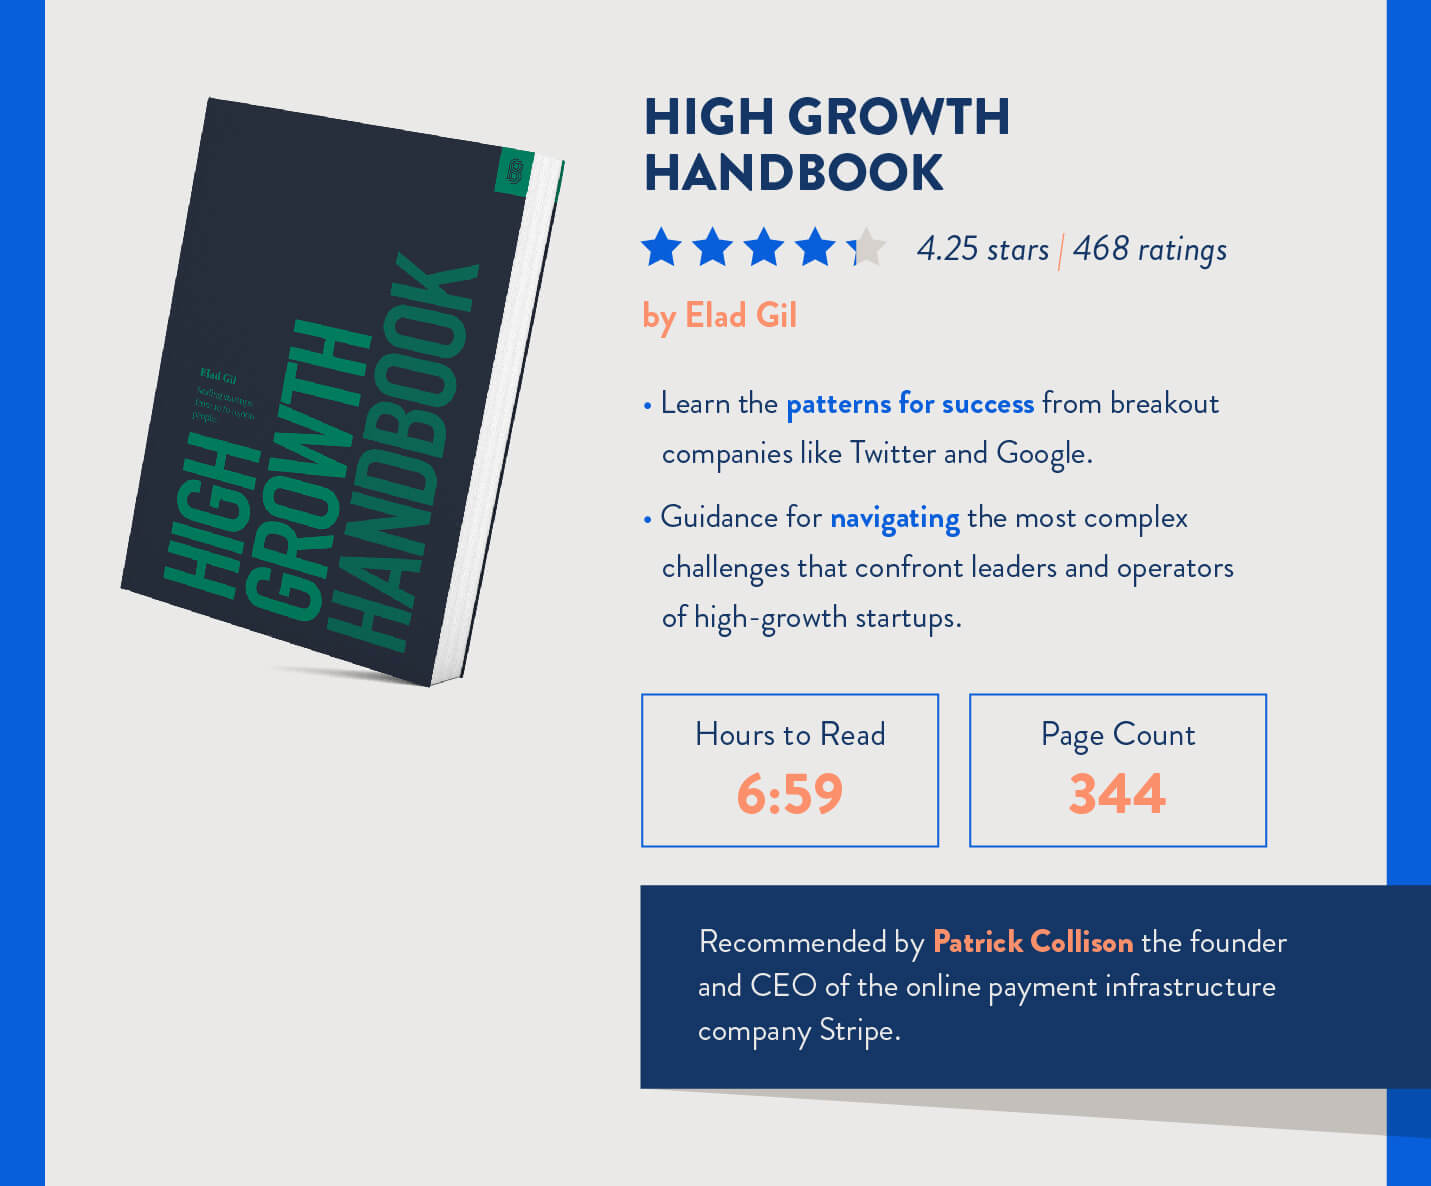 high growth handbook for mobile marketers to read recommended by Patrick Collison of Stripe